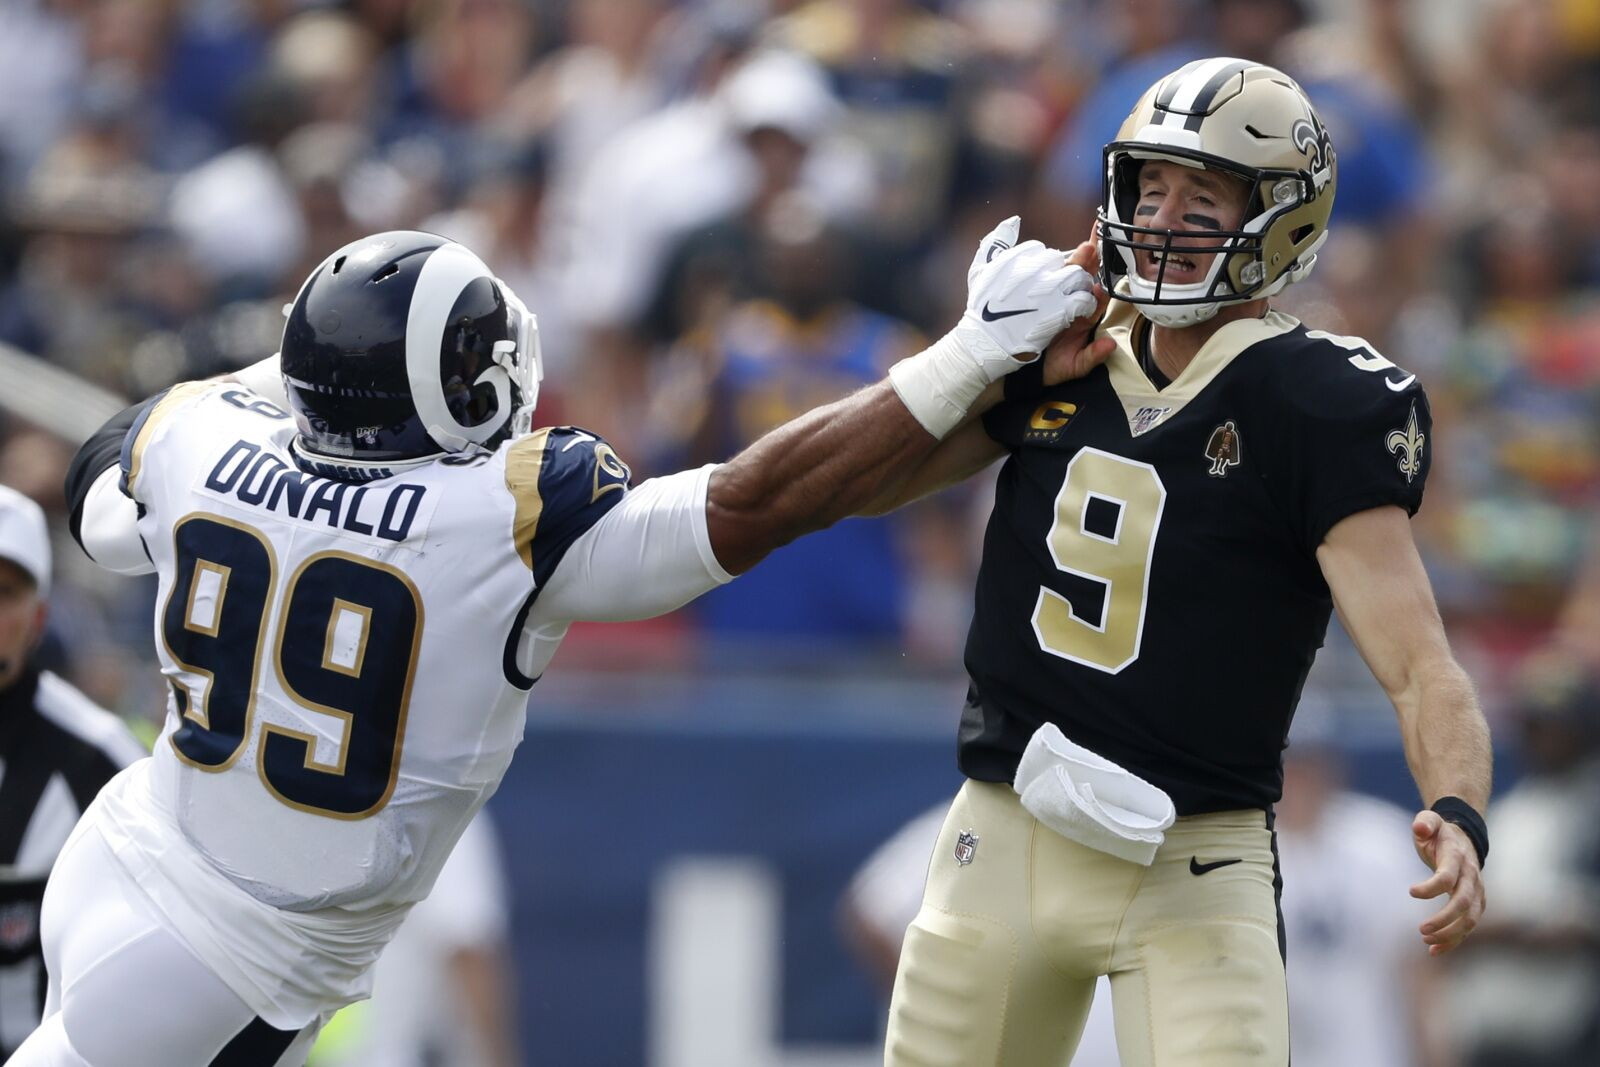 Drew Brees to miss significant time, surgery is next, Bridgewater is up